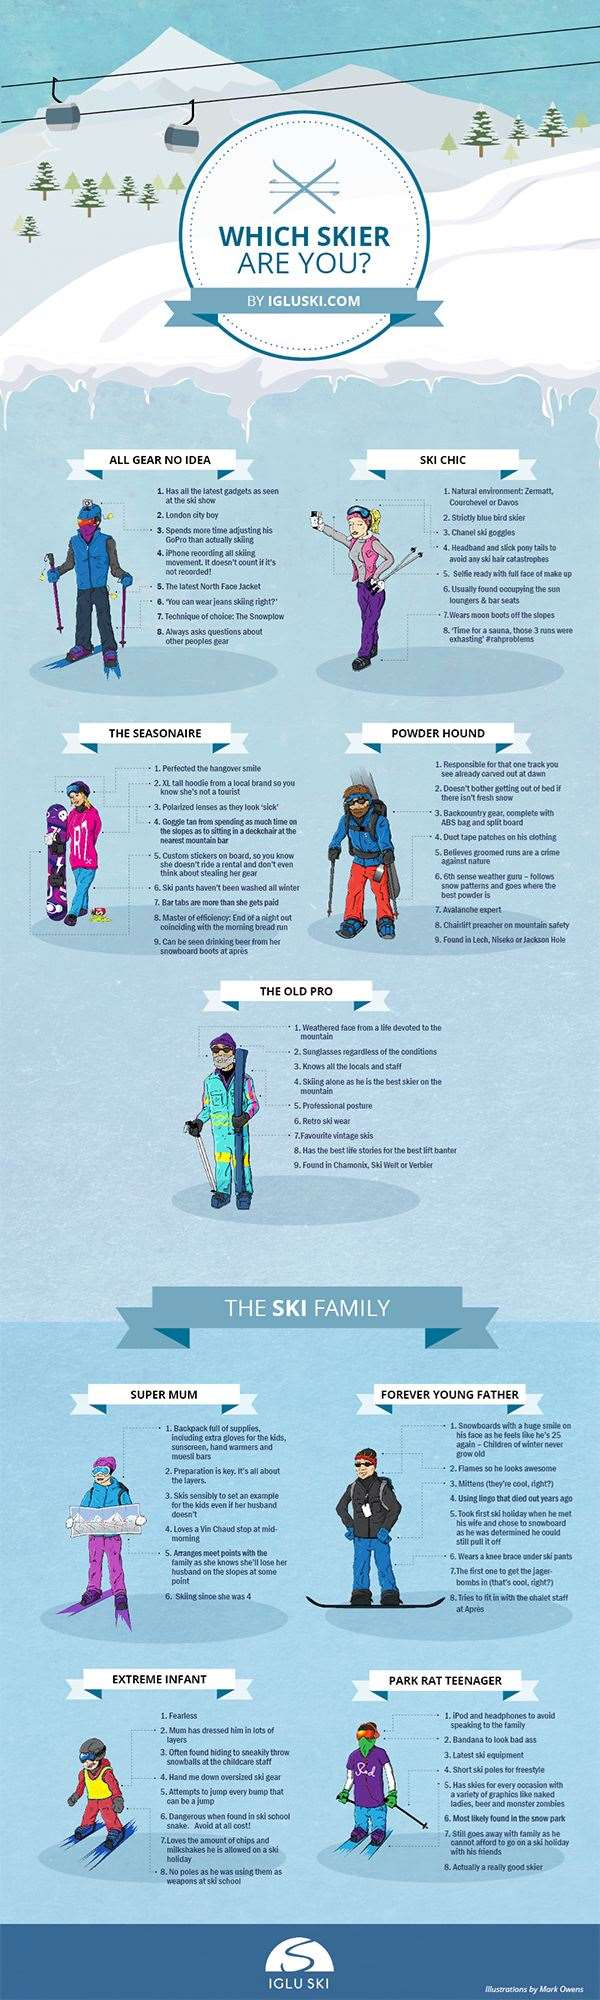 Which Skier Are You